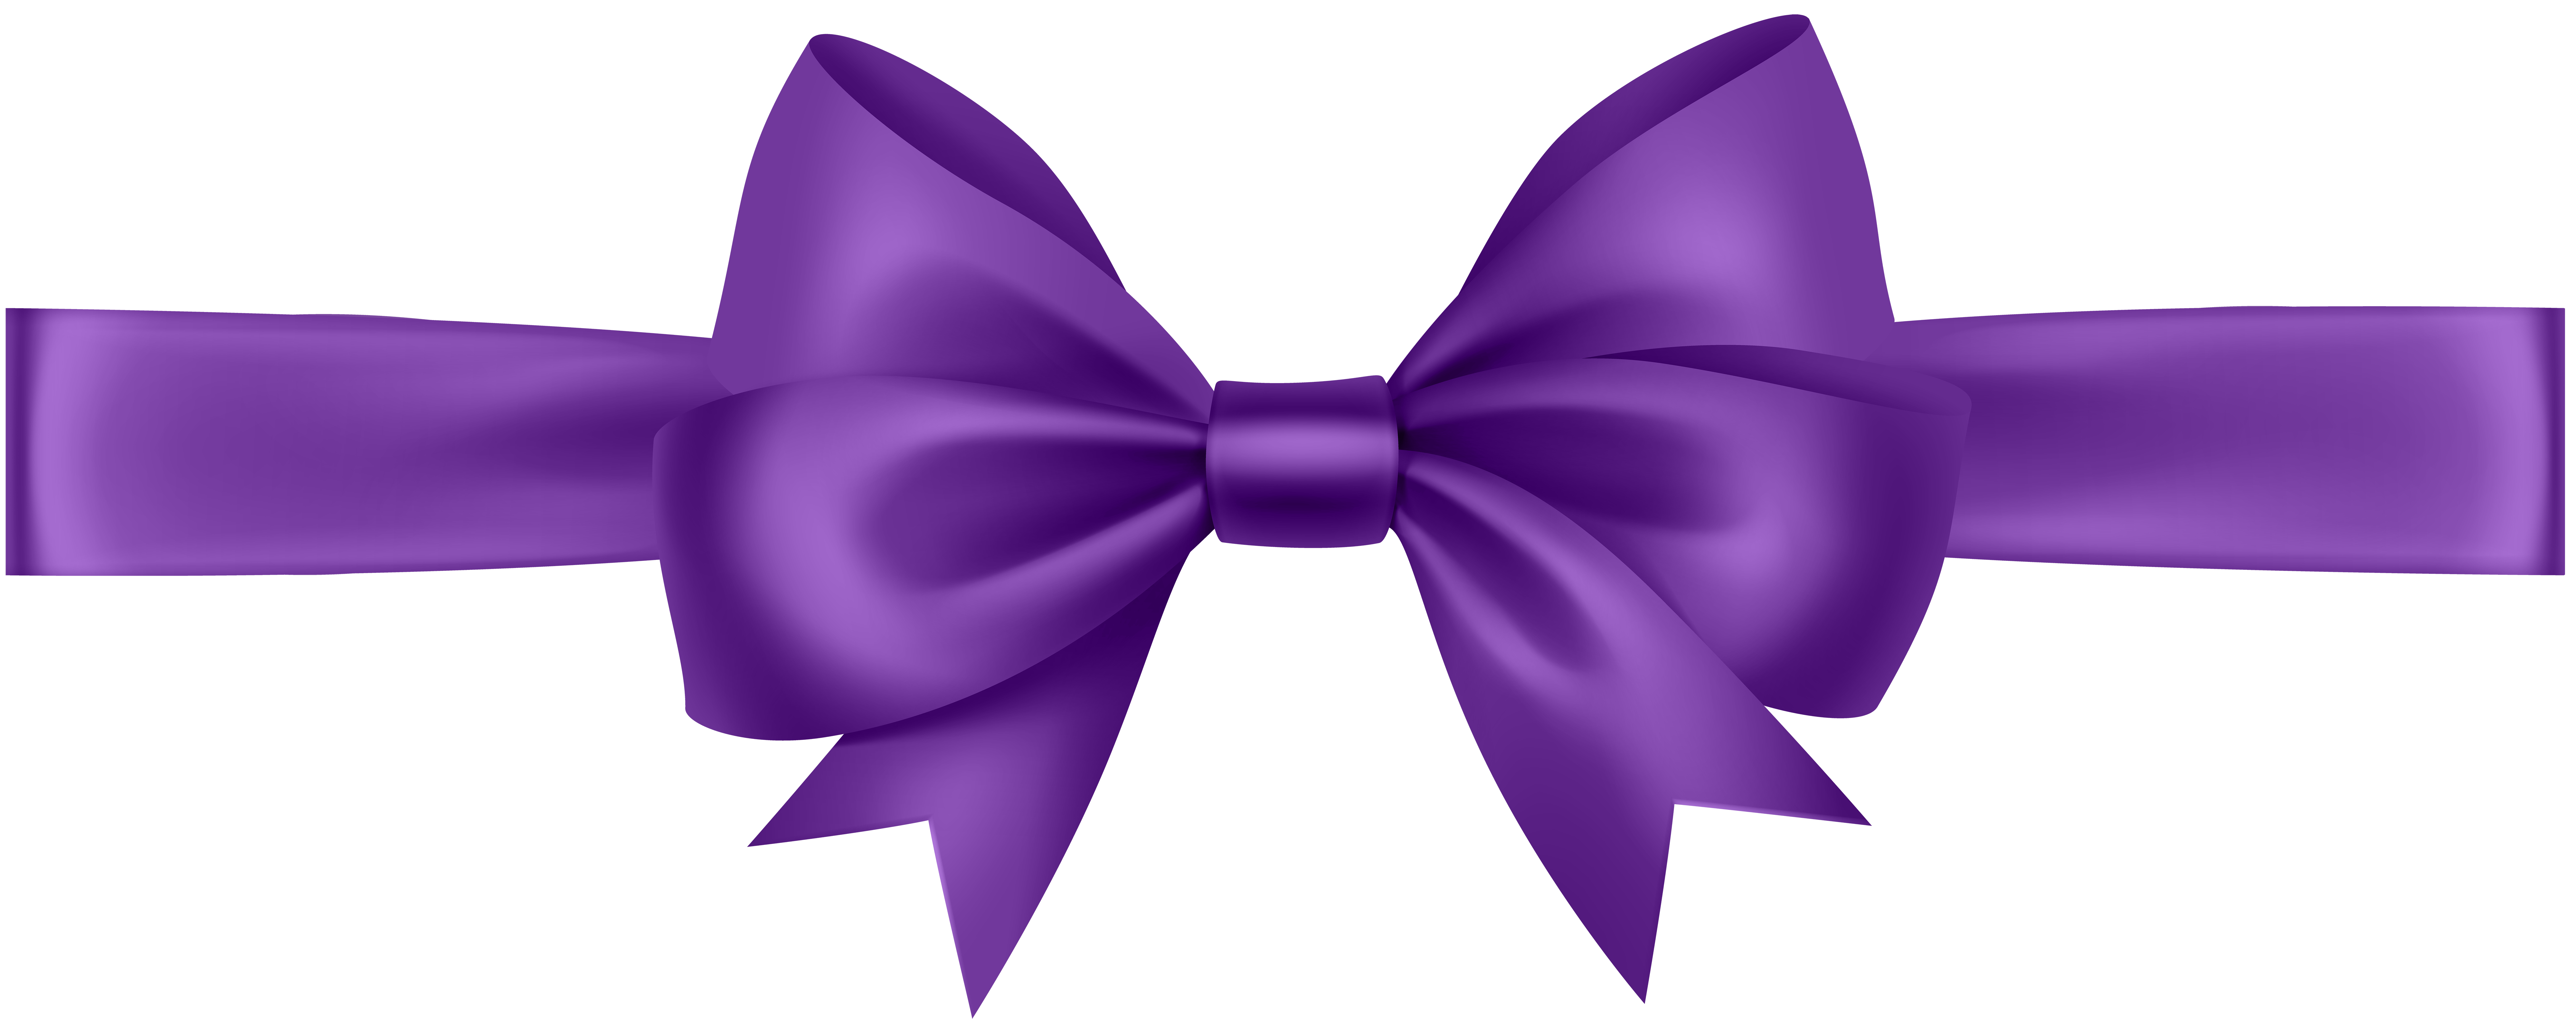 Ribbon with bow transparent. Bows clipart purple